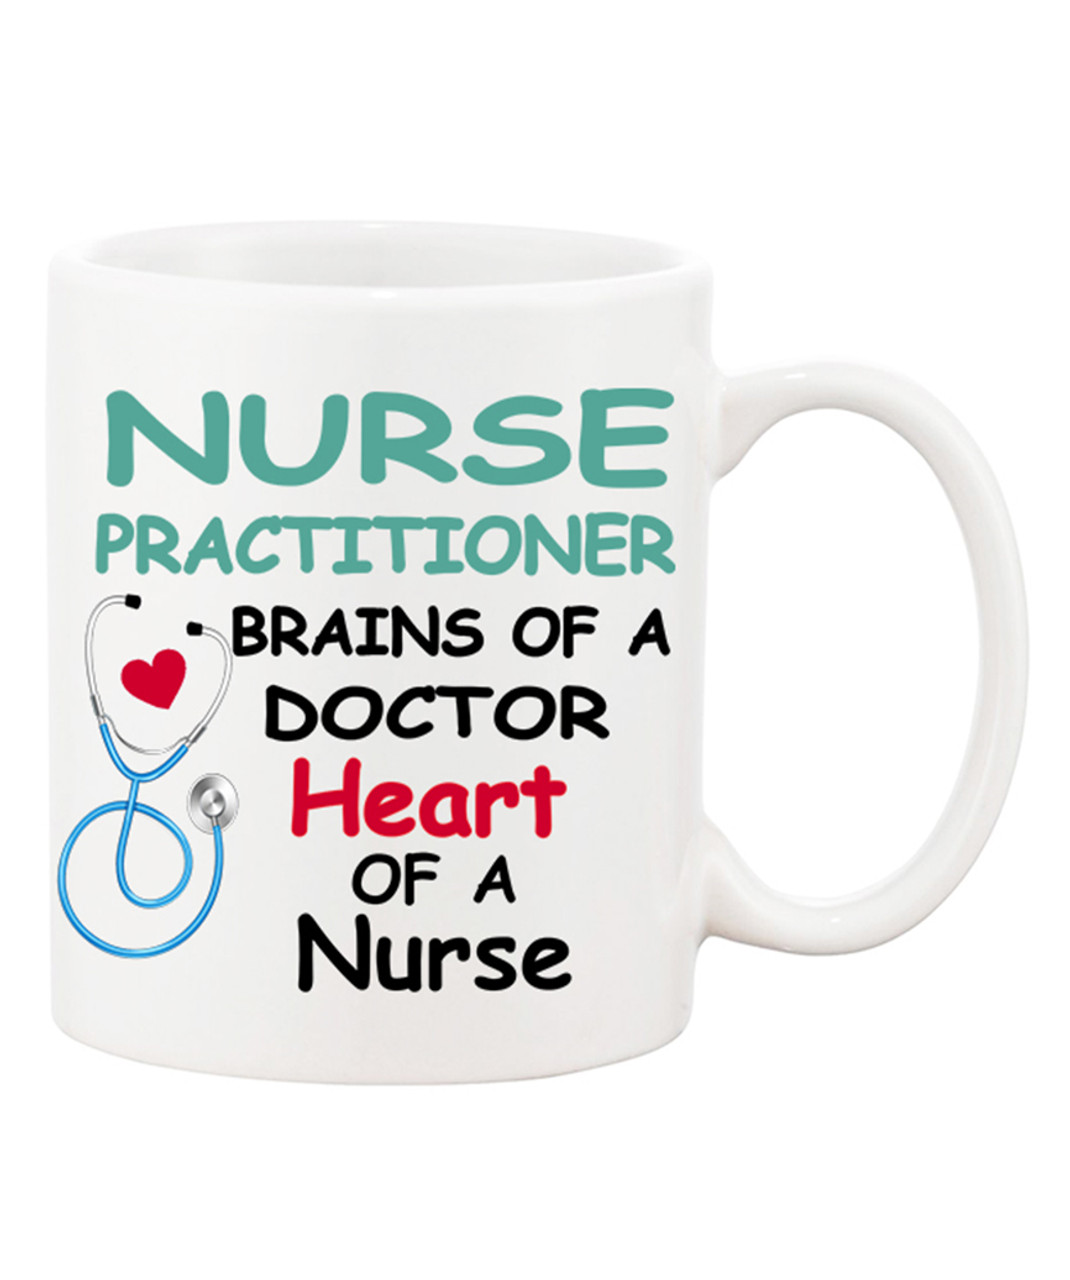 Worlds best doctor coffee mugs - Nurse Practitioner Brains Of A Doctor Heart Of A Nurse Cute Ceramic Coffee Mug